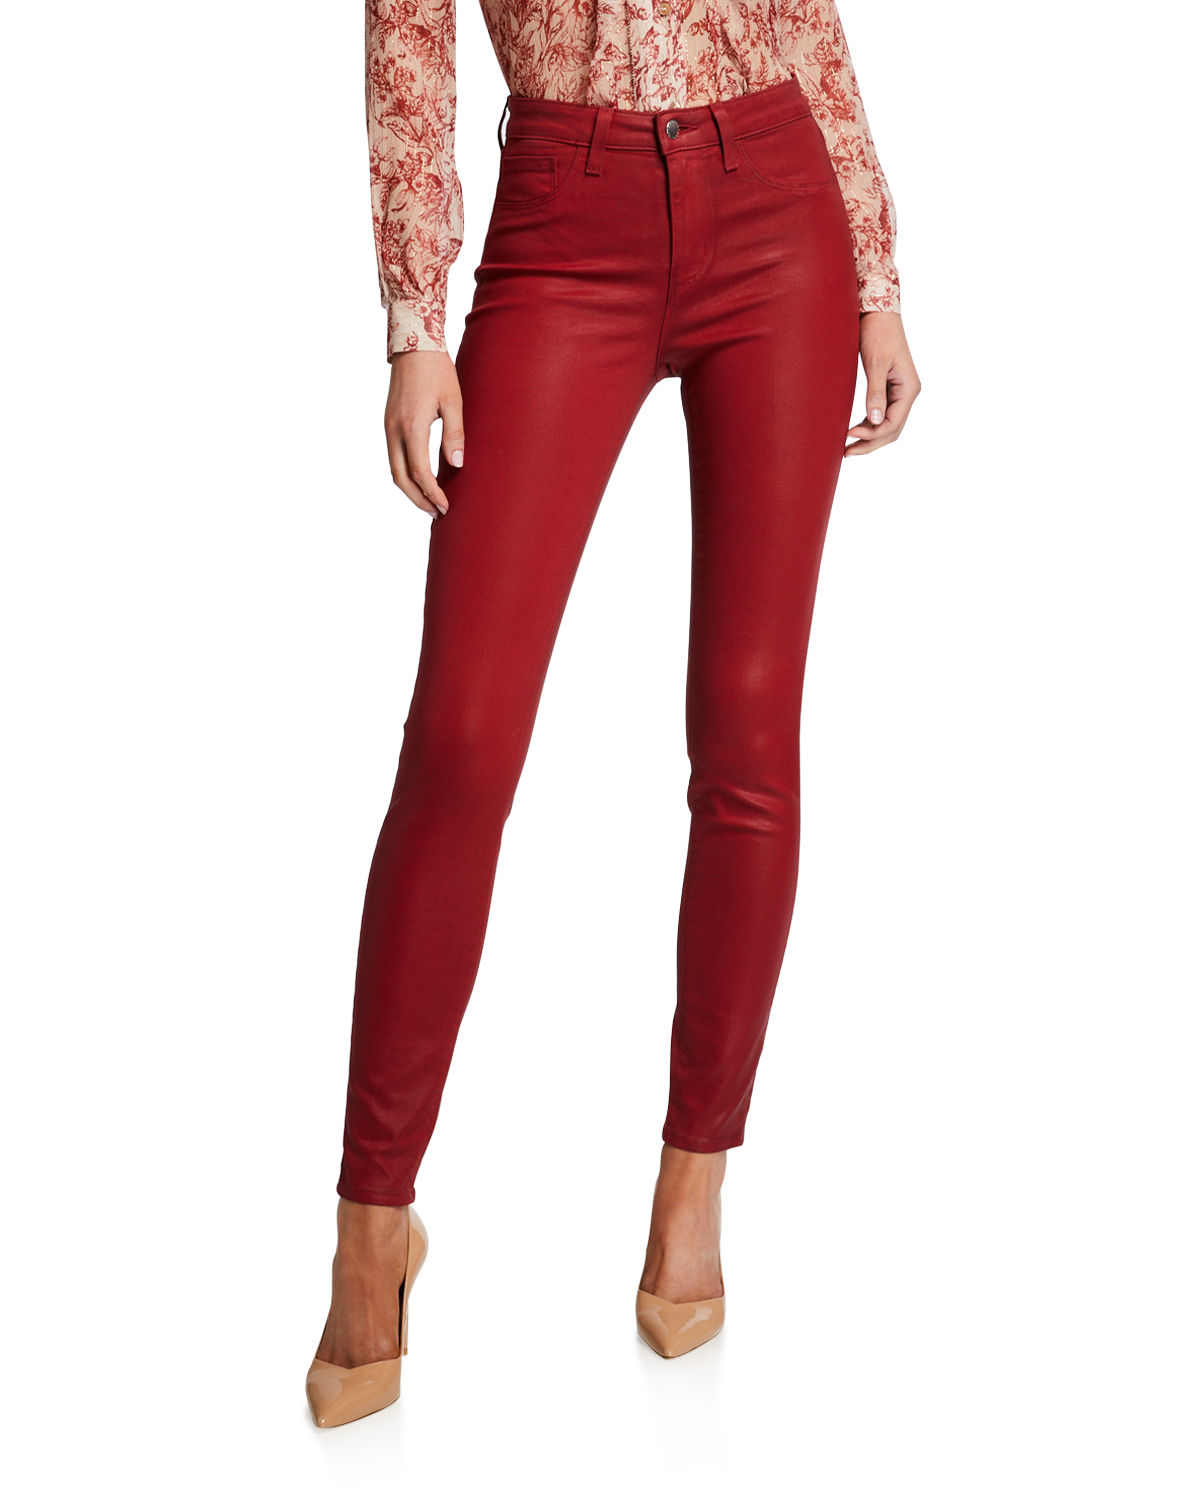 L'agence Coats MARGUERITE COATED COTTON DENIM HIGH-RISE SKINNY JEANS